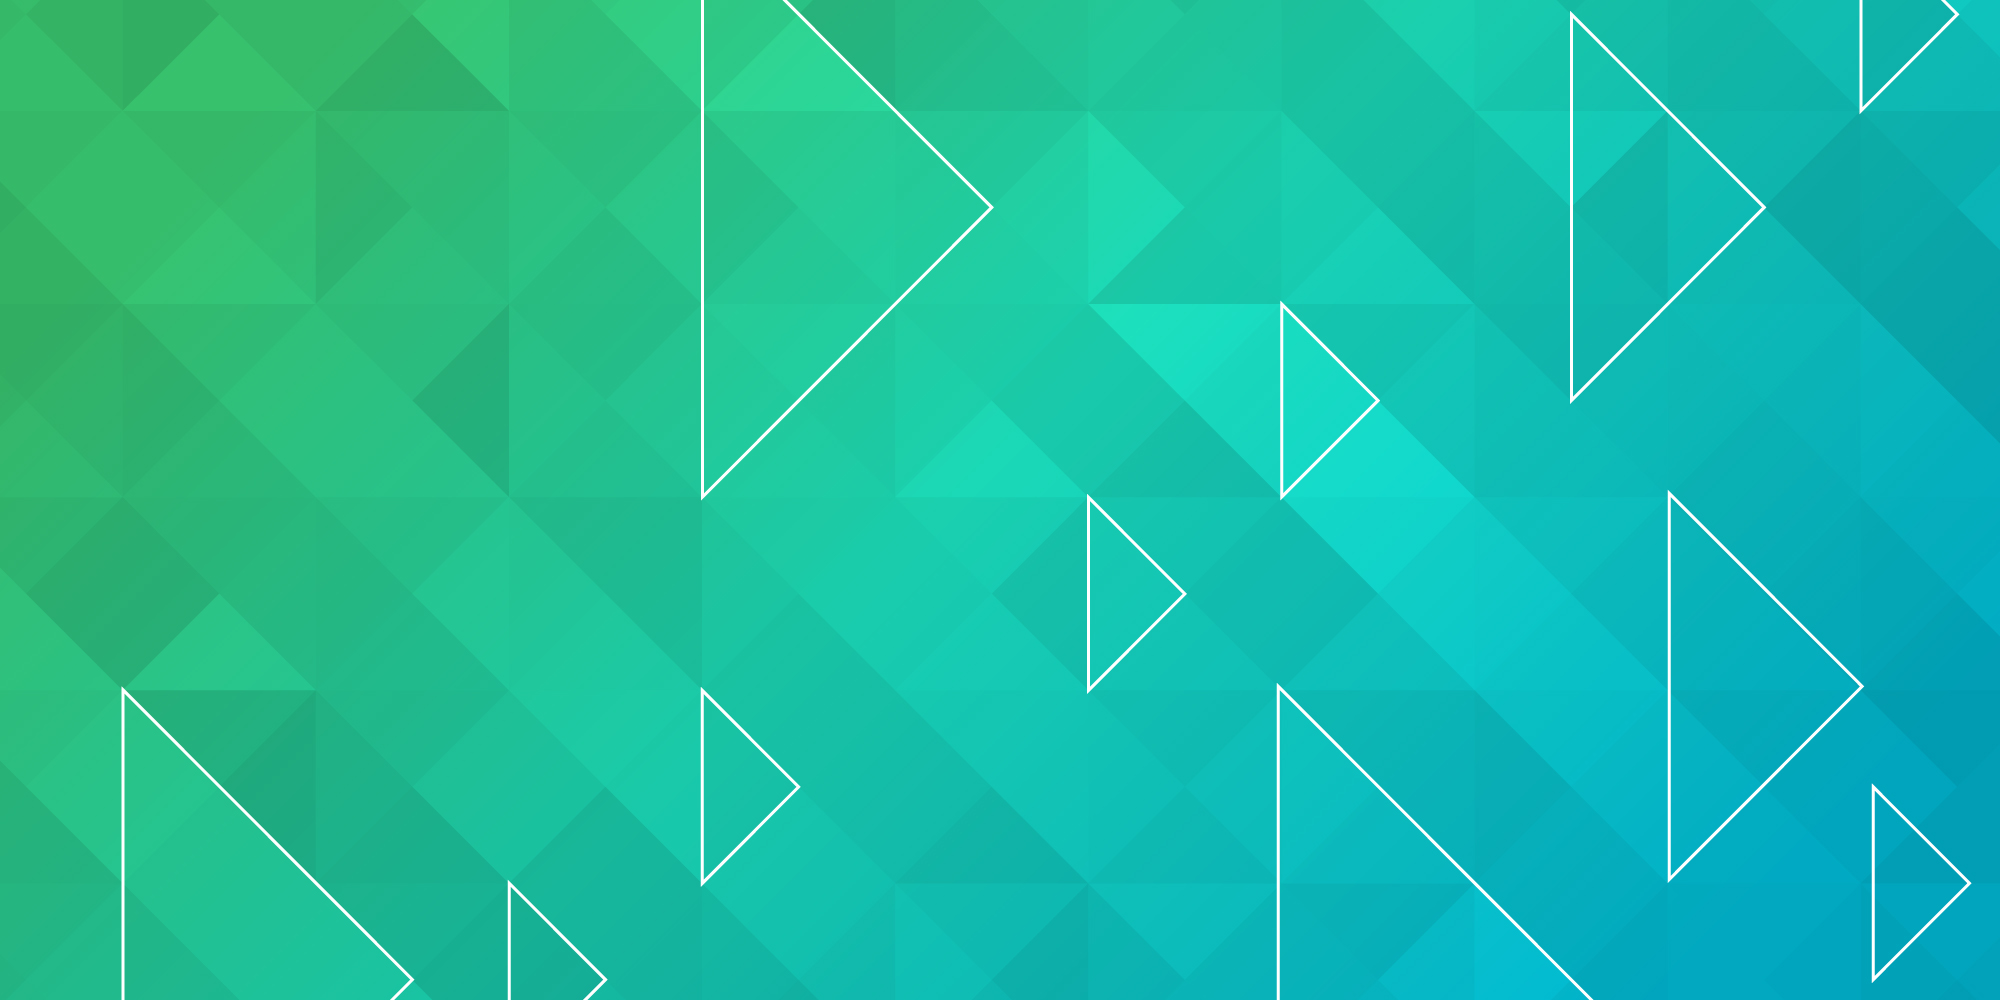 green, teal, and blue triangle pixel pattern